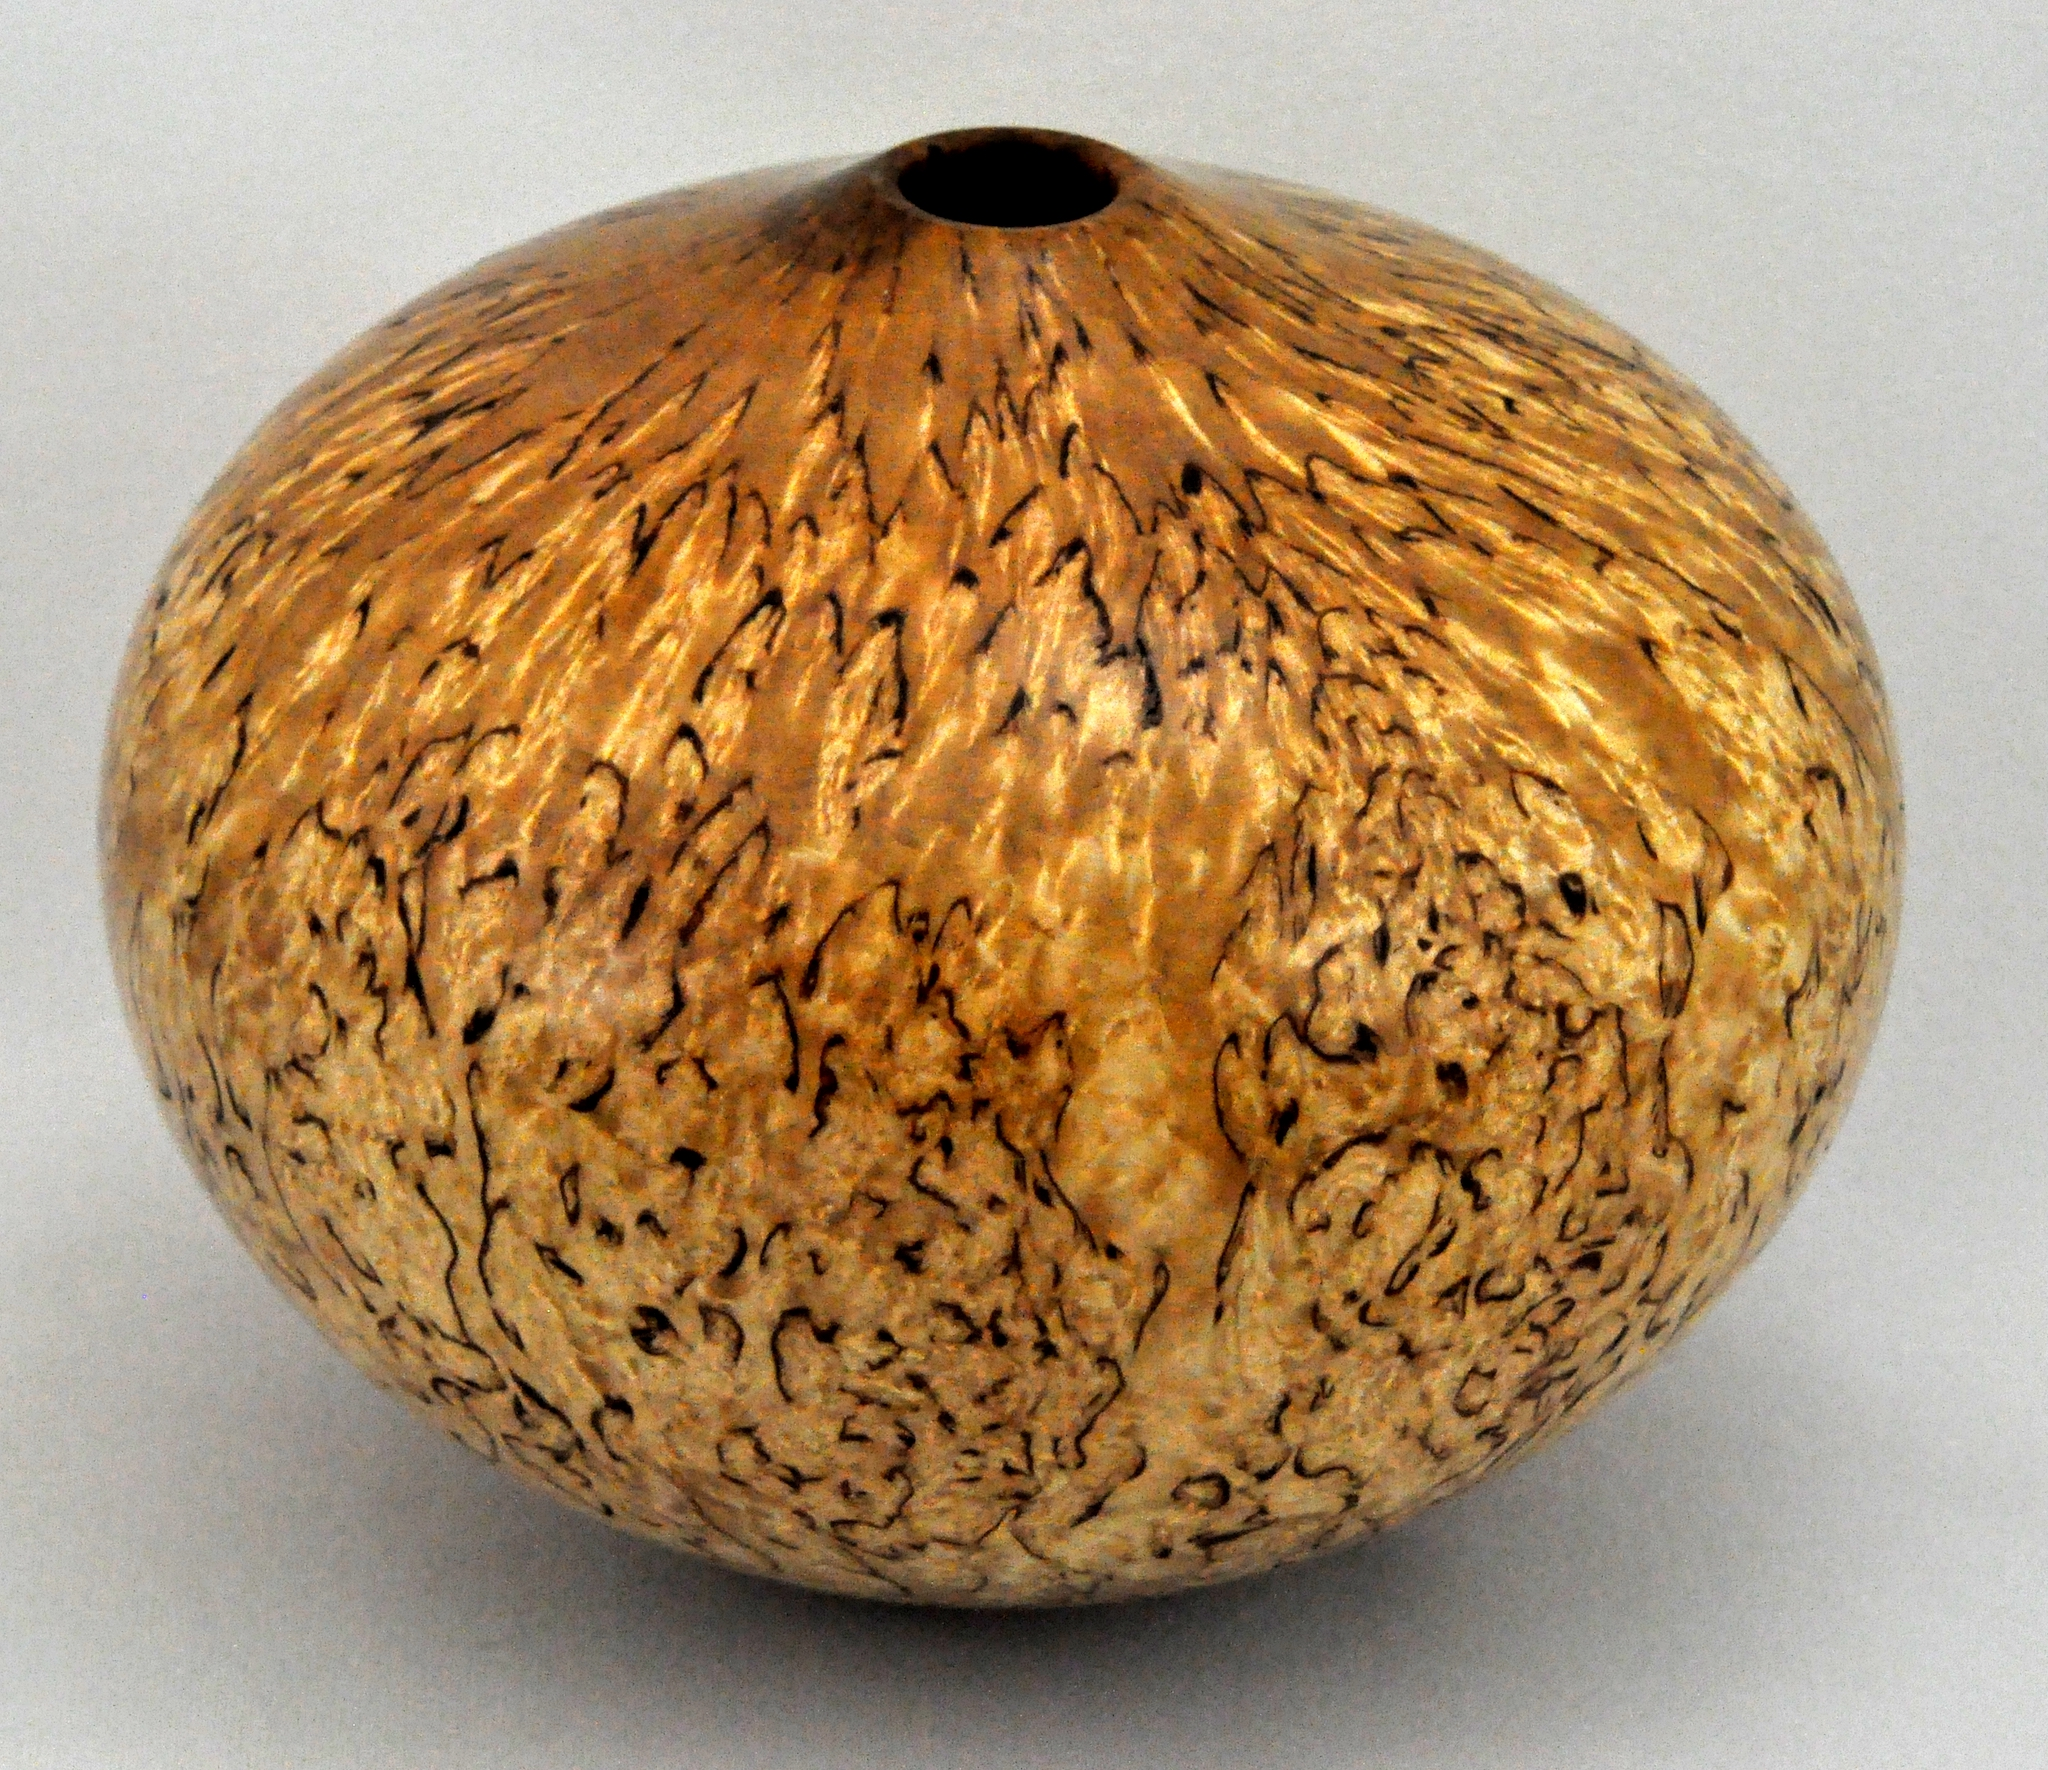 Mike Jackofsky - Masur Birch Hollow Form